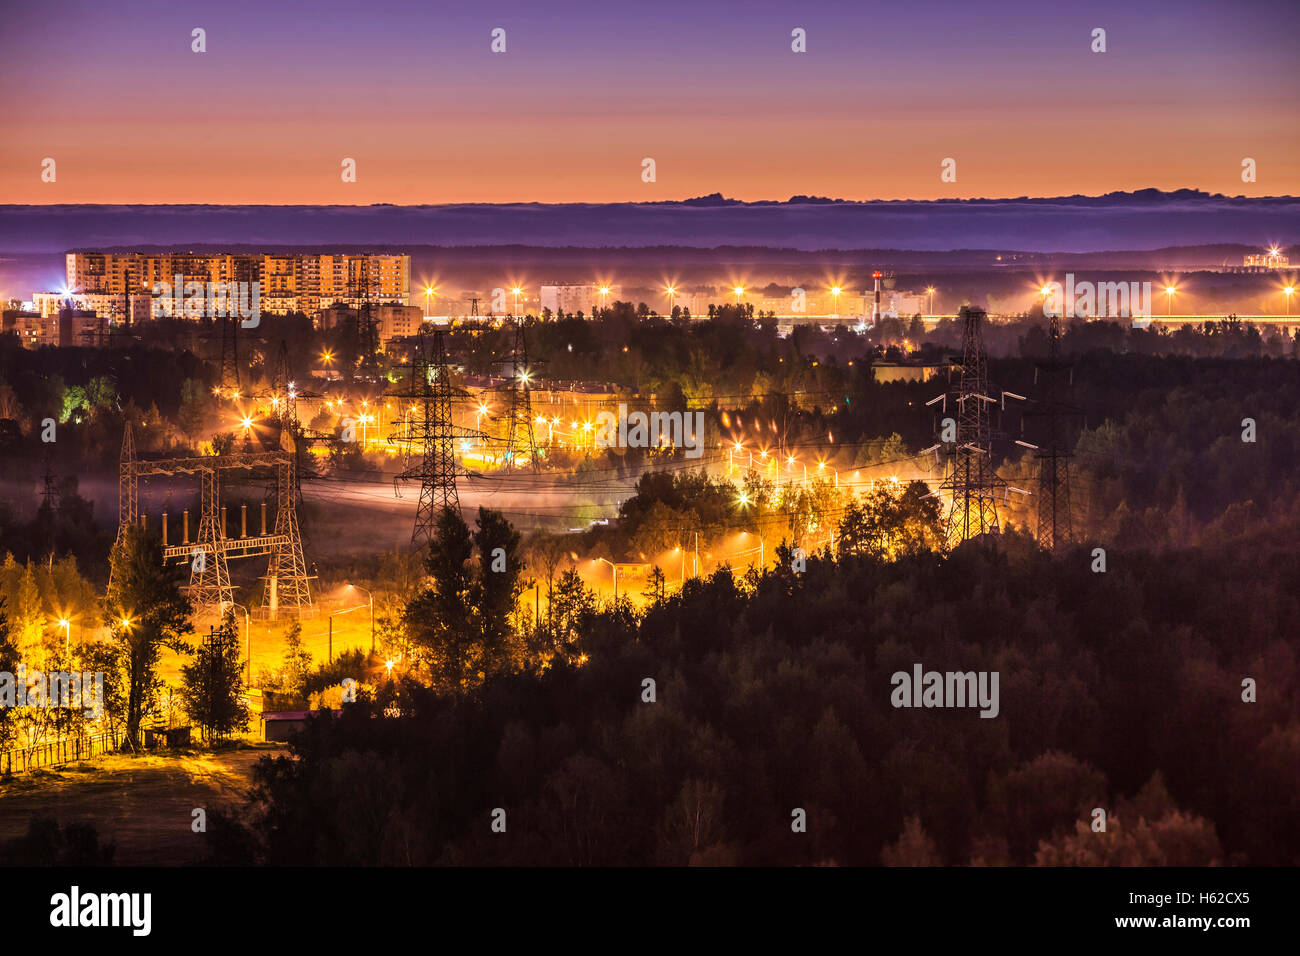 Russia, Saint Petersburg, view to satellite town at the outskirts - Stock Image